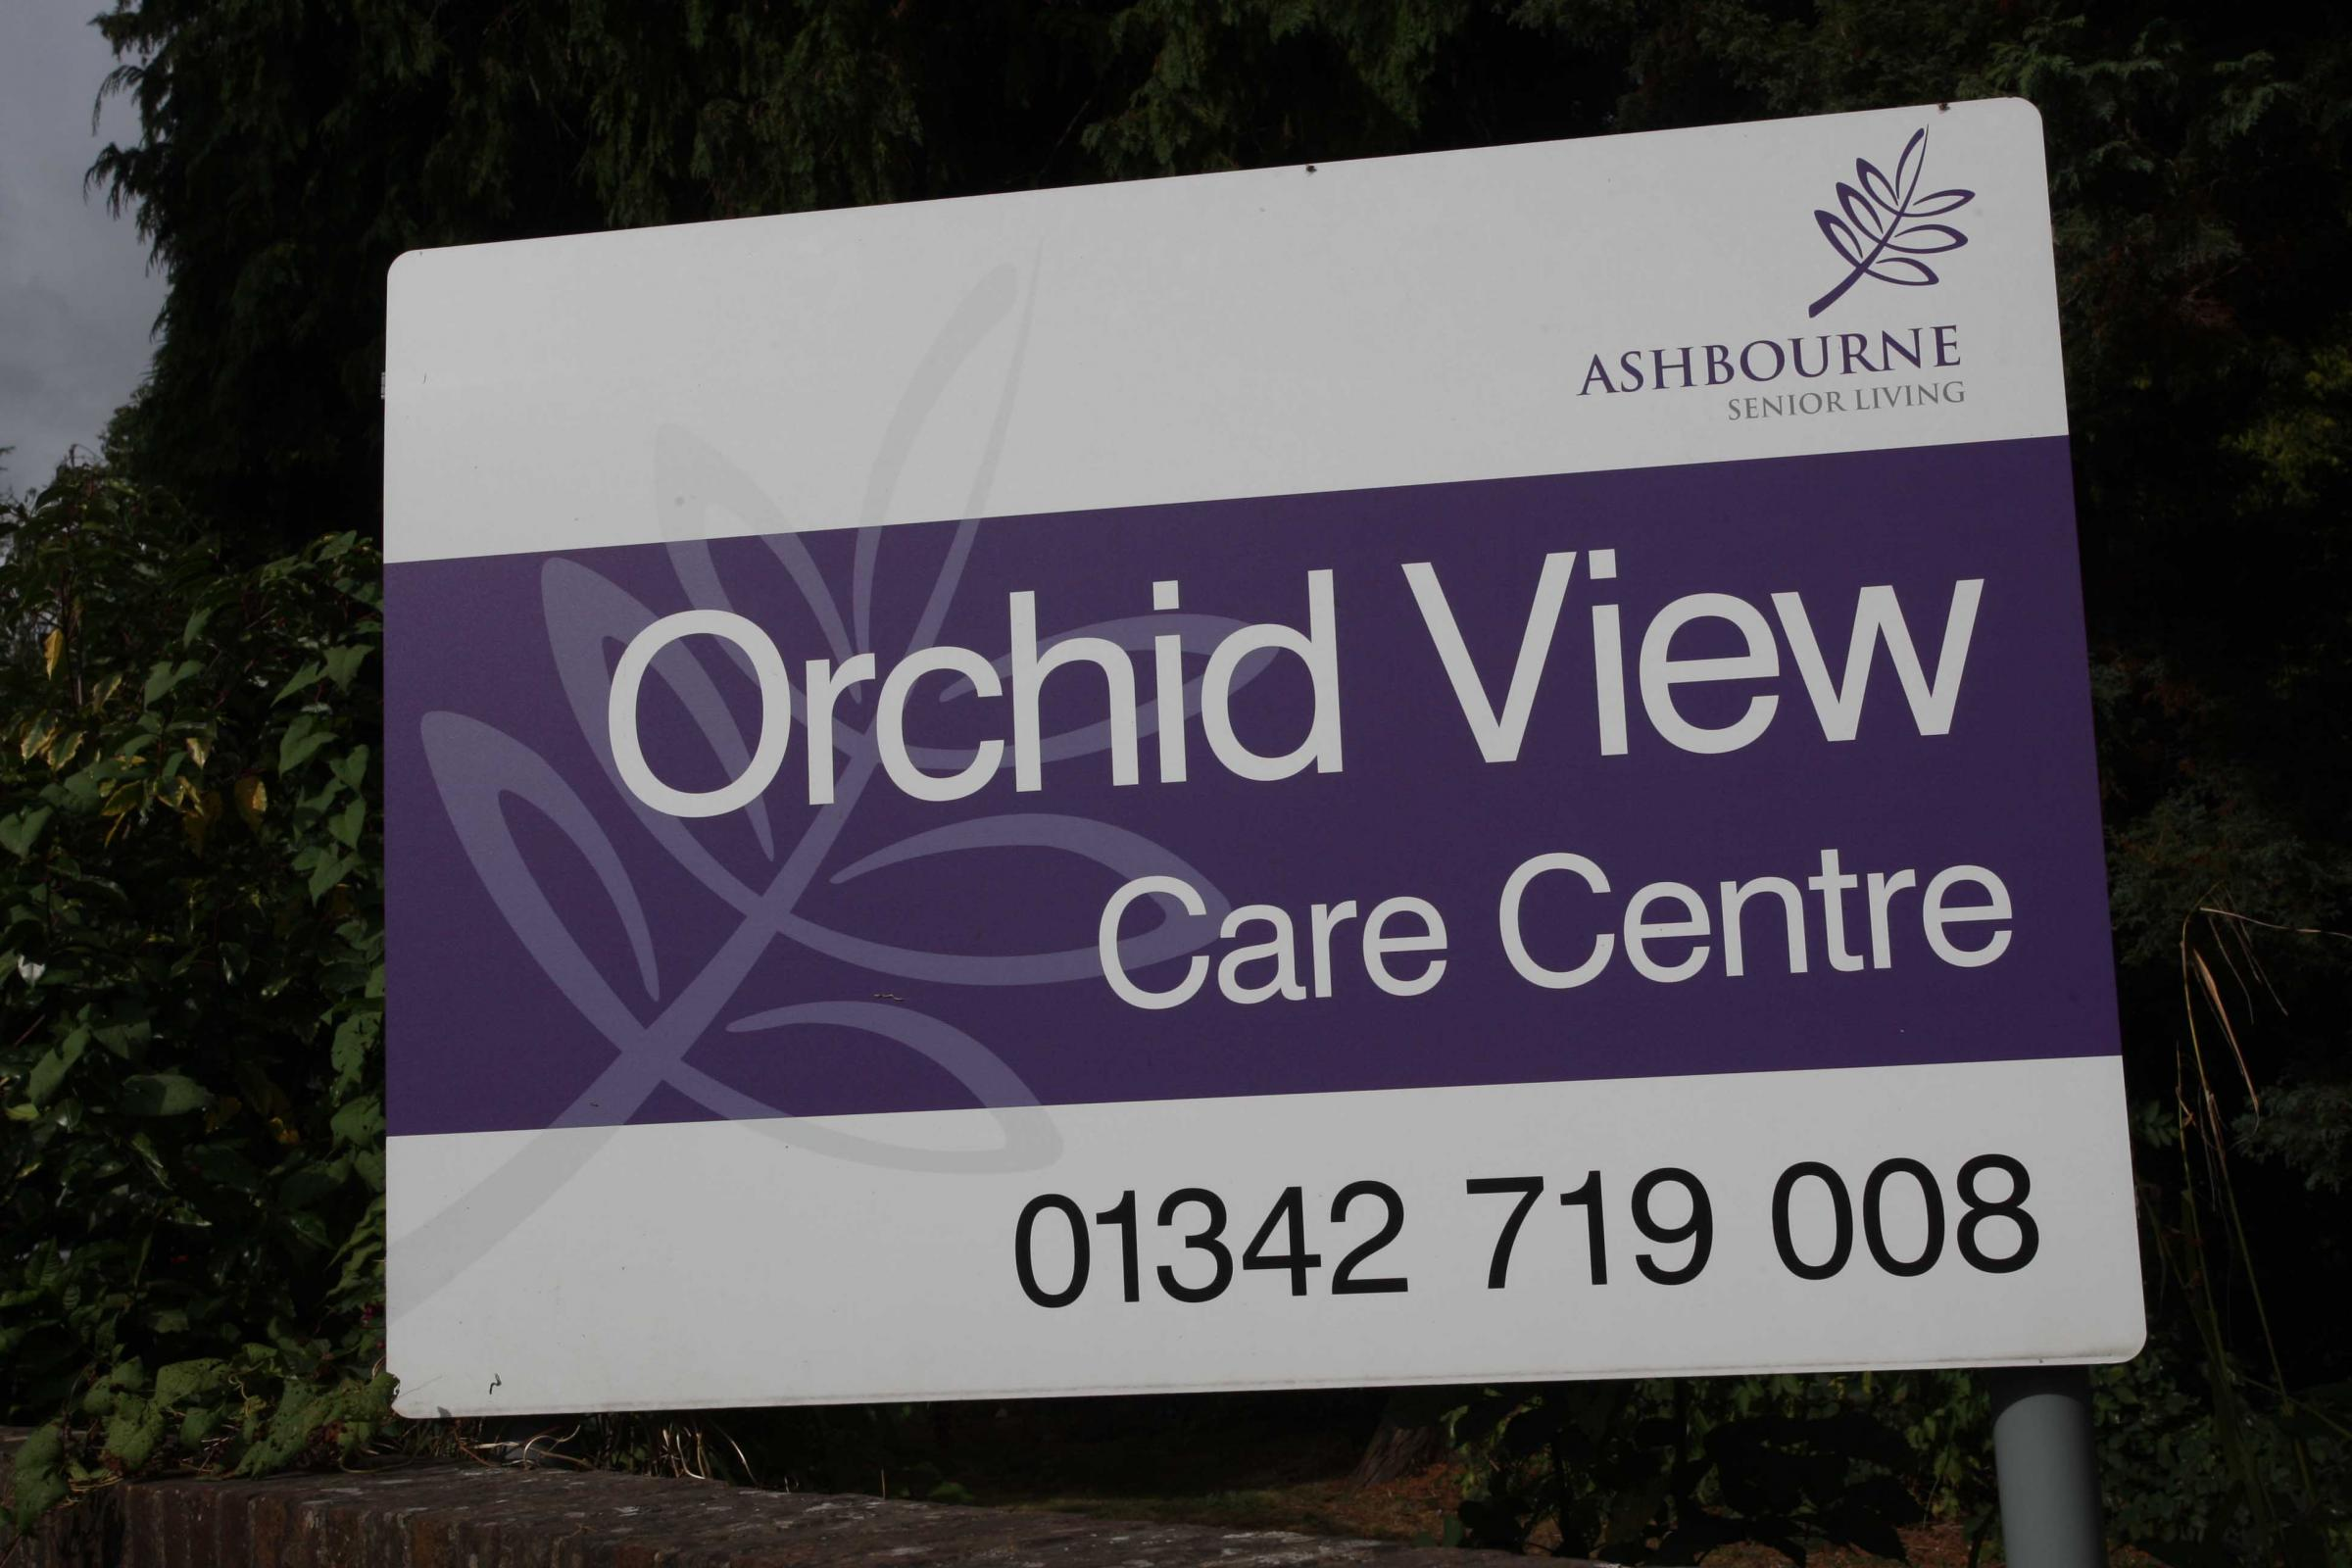 Calls for overhaul of care industry following death of 19 patients at Orchid View care home